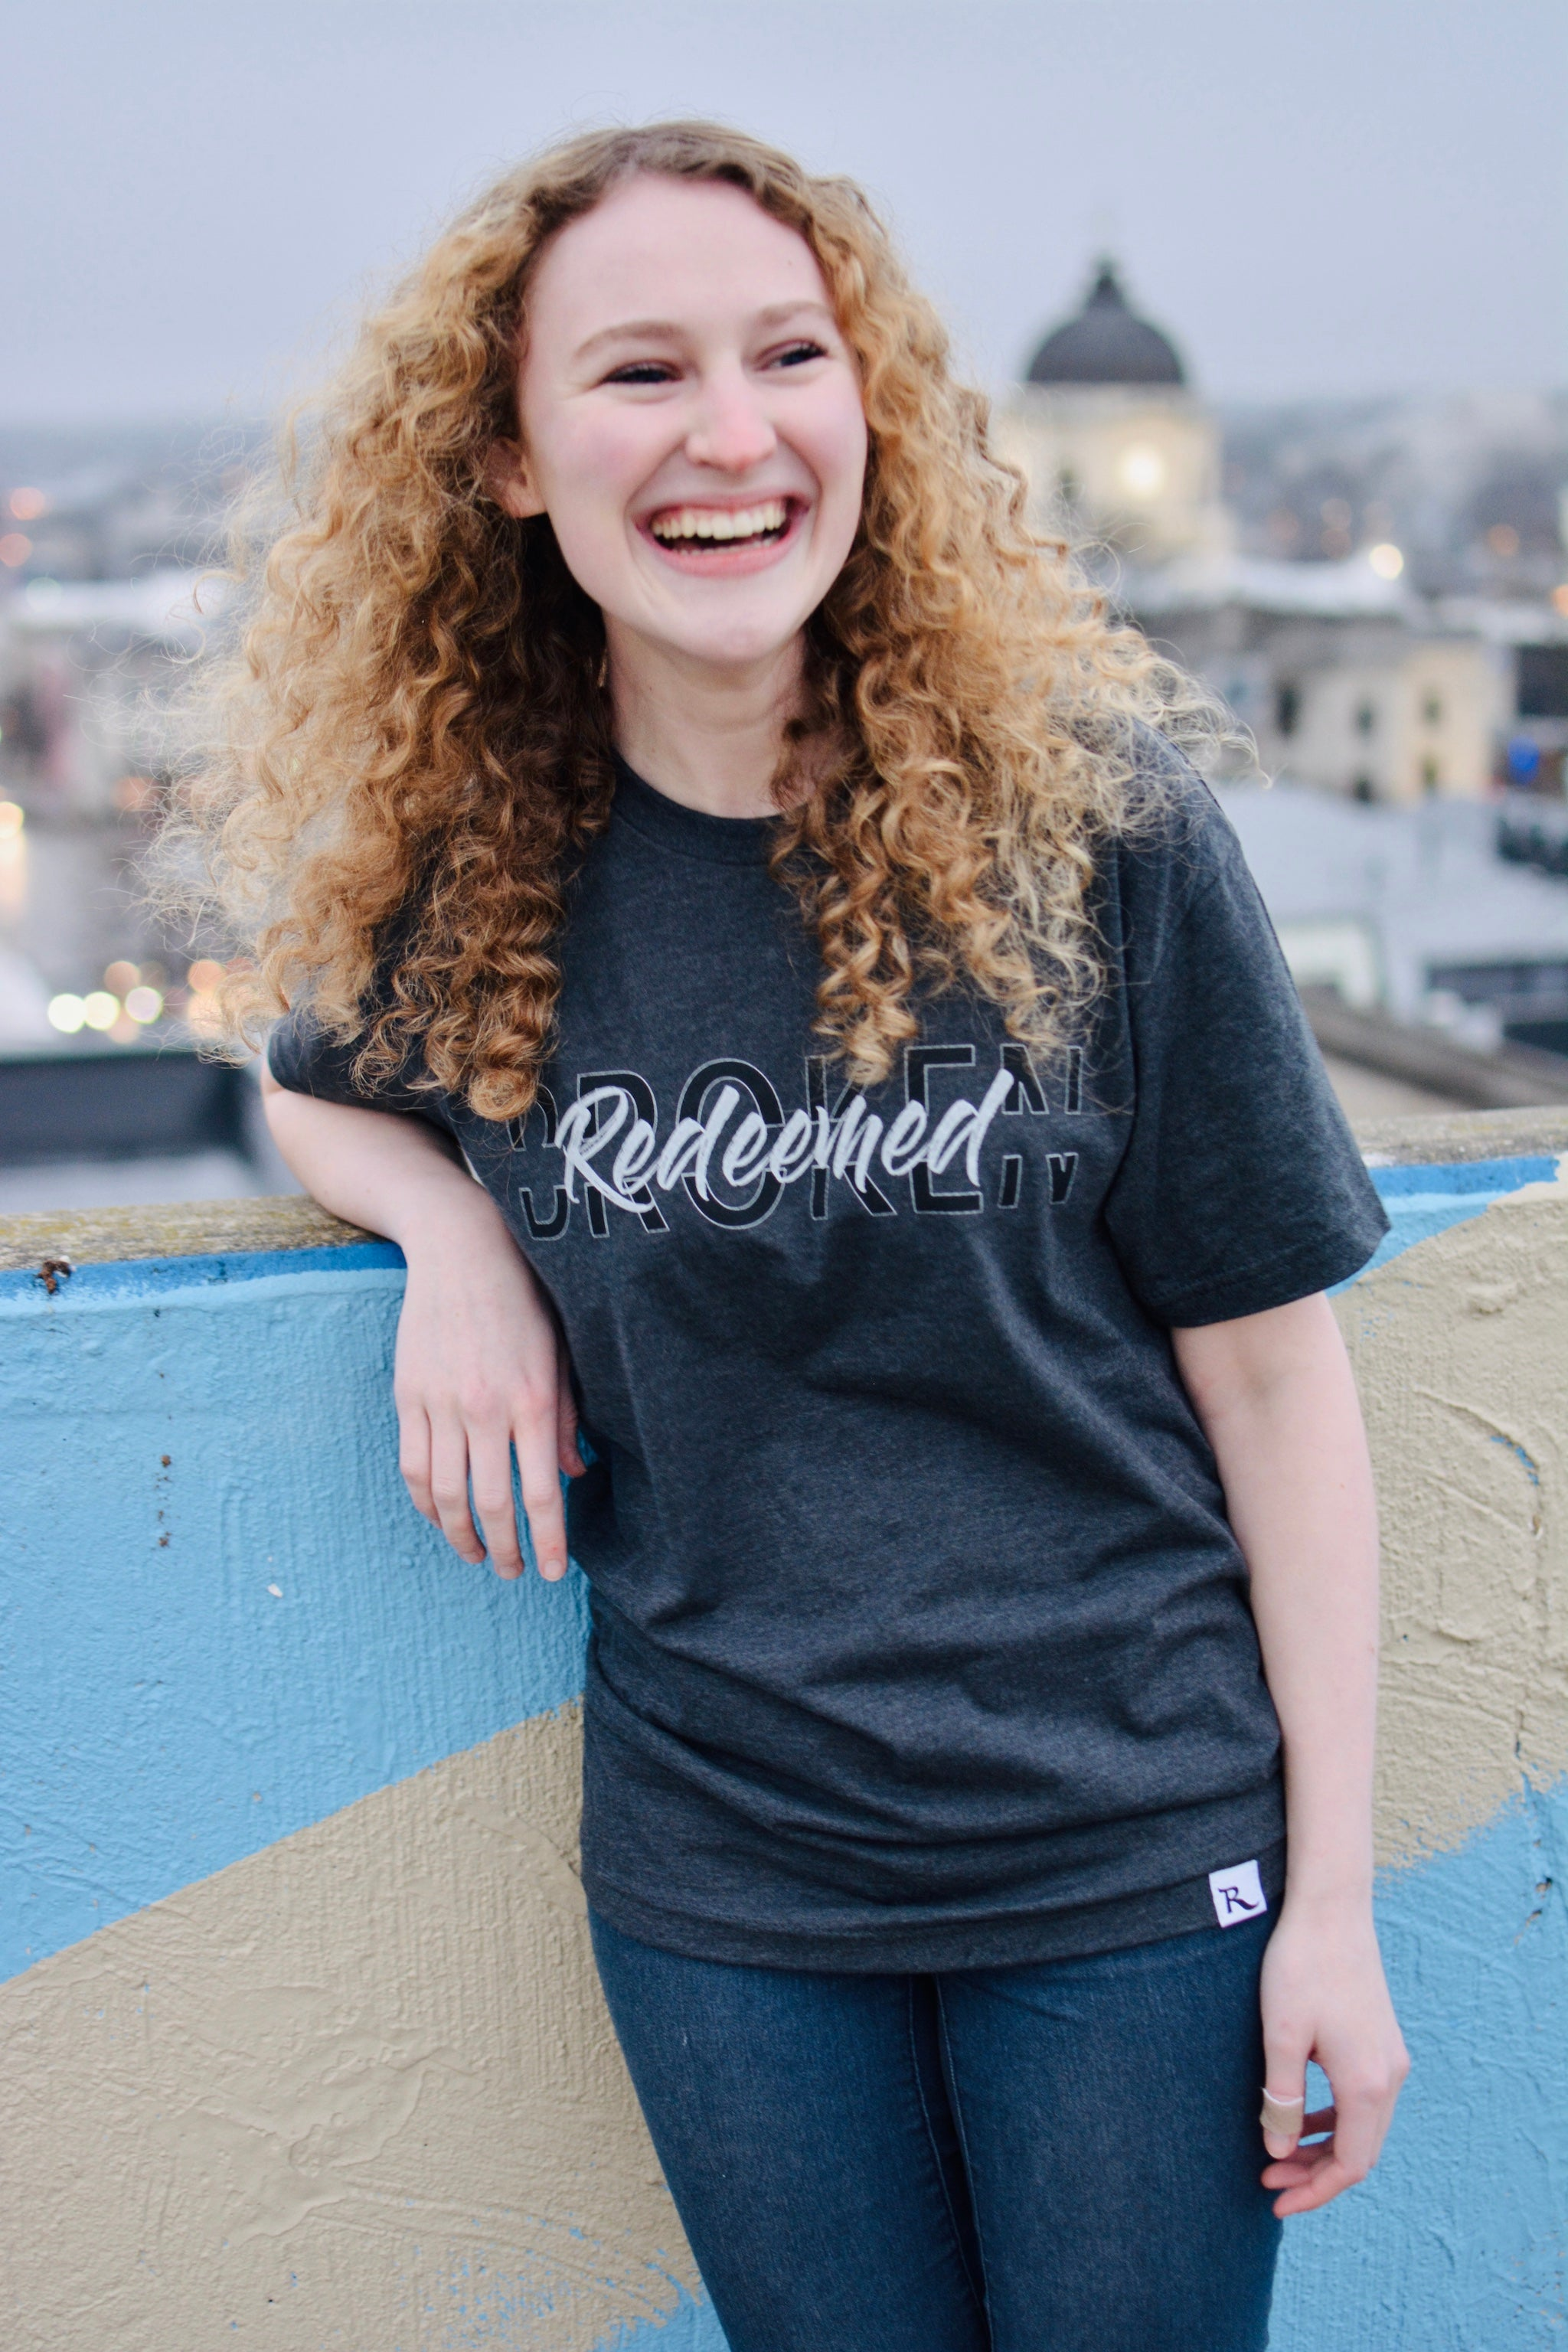 Broken and Redeemed Tee